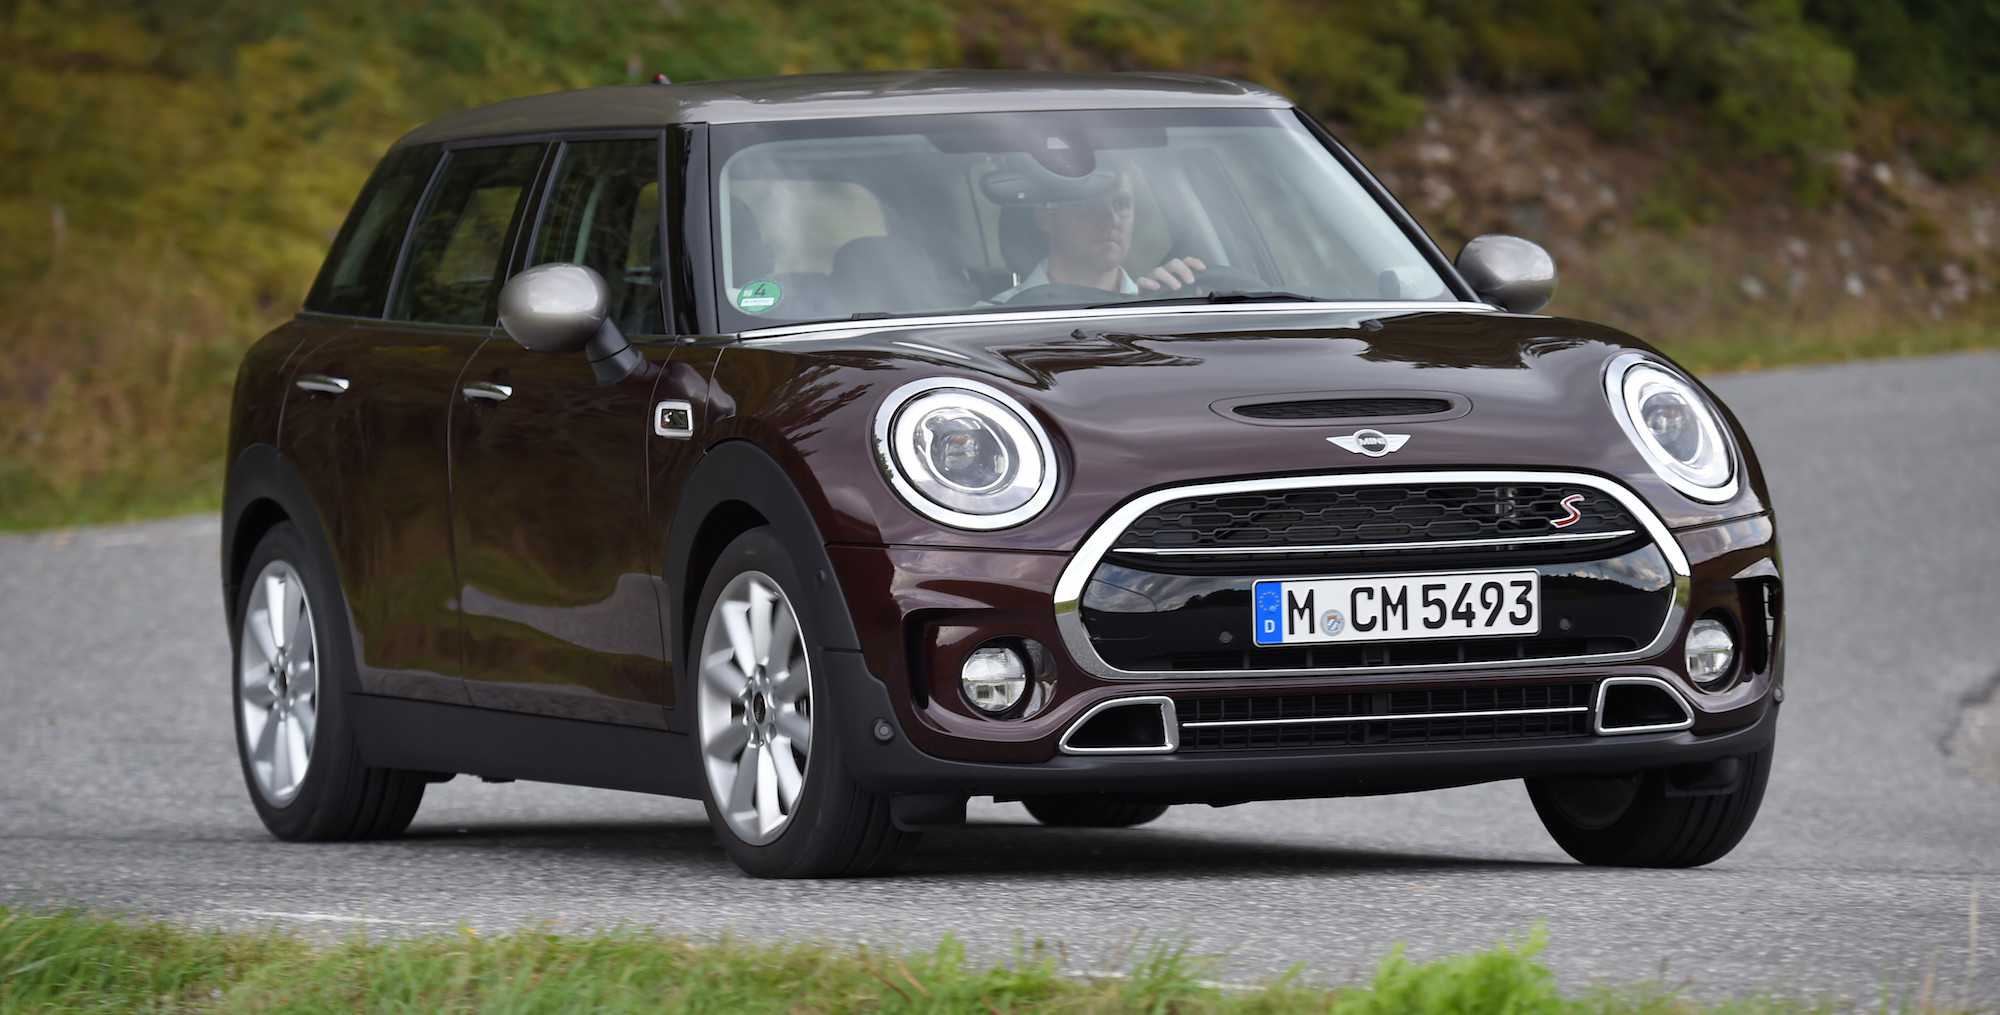 2016 mini cooper s clubman exterior 6933 cars performance reviews and test drive. Black Bedroom Furniture Sets. Home Design Ideas